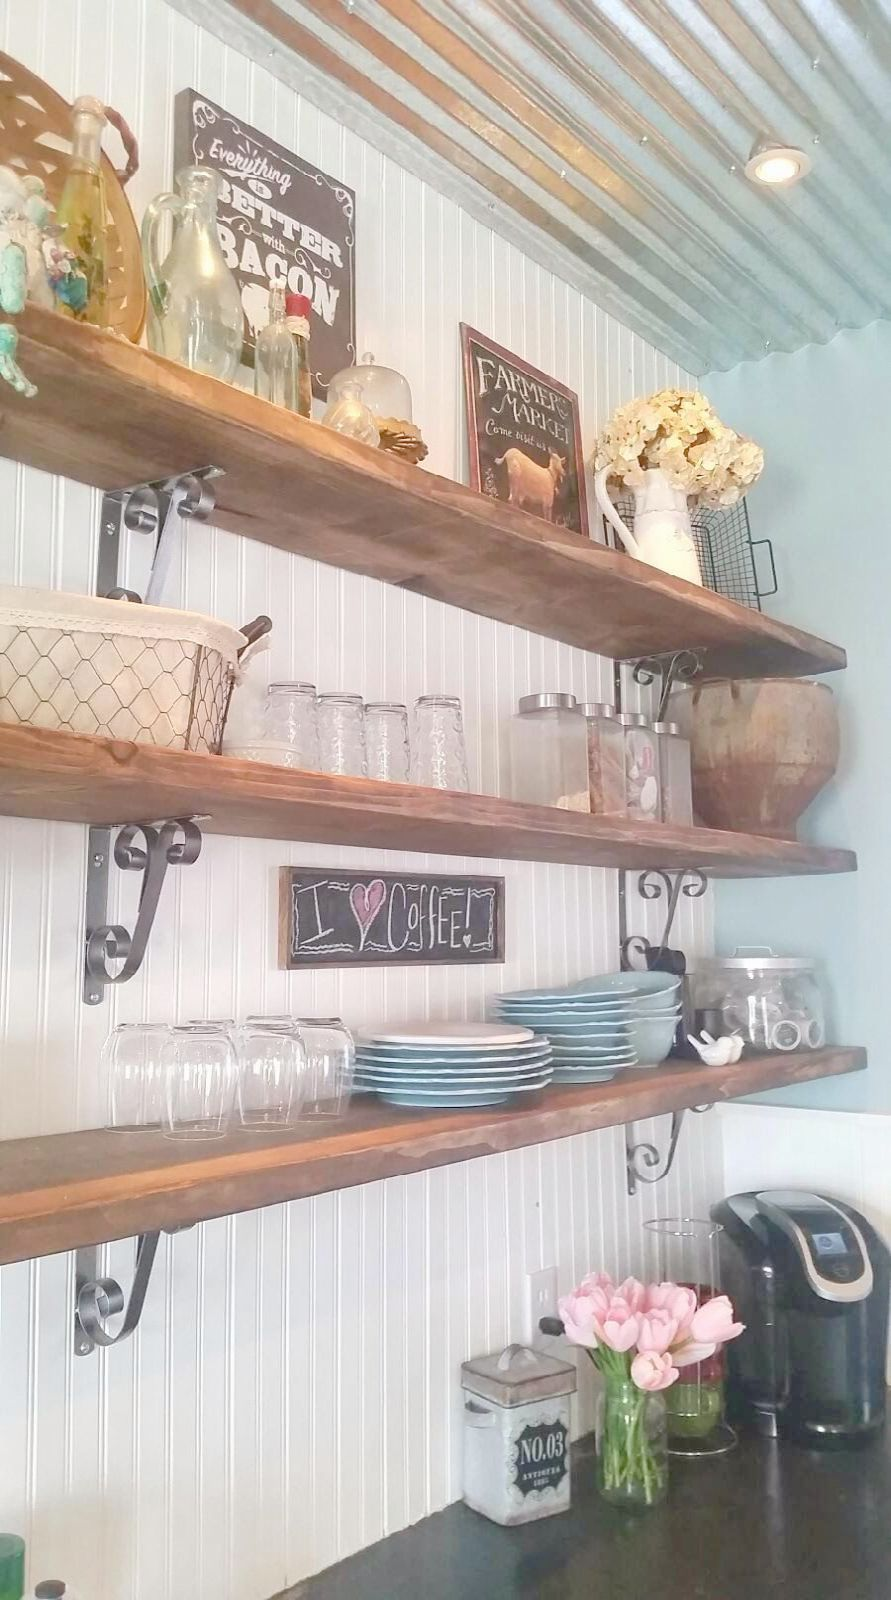 Coffee Shops Near Me Rome My Coffee Shop Near Me Hiring Via Coffee Grinder Hario Their Farmhouse Kitchen Remodel Farmhouse Kitchen Decor Kitchen Remodel Small